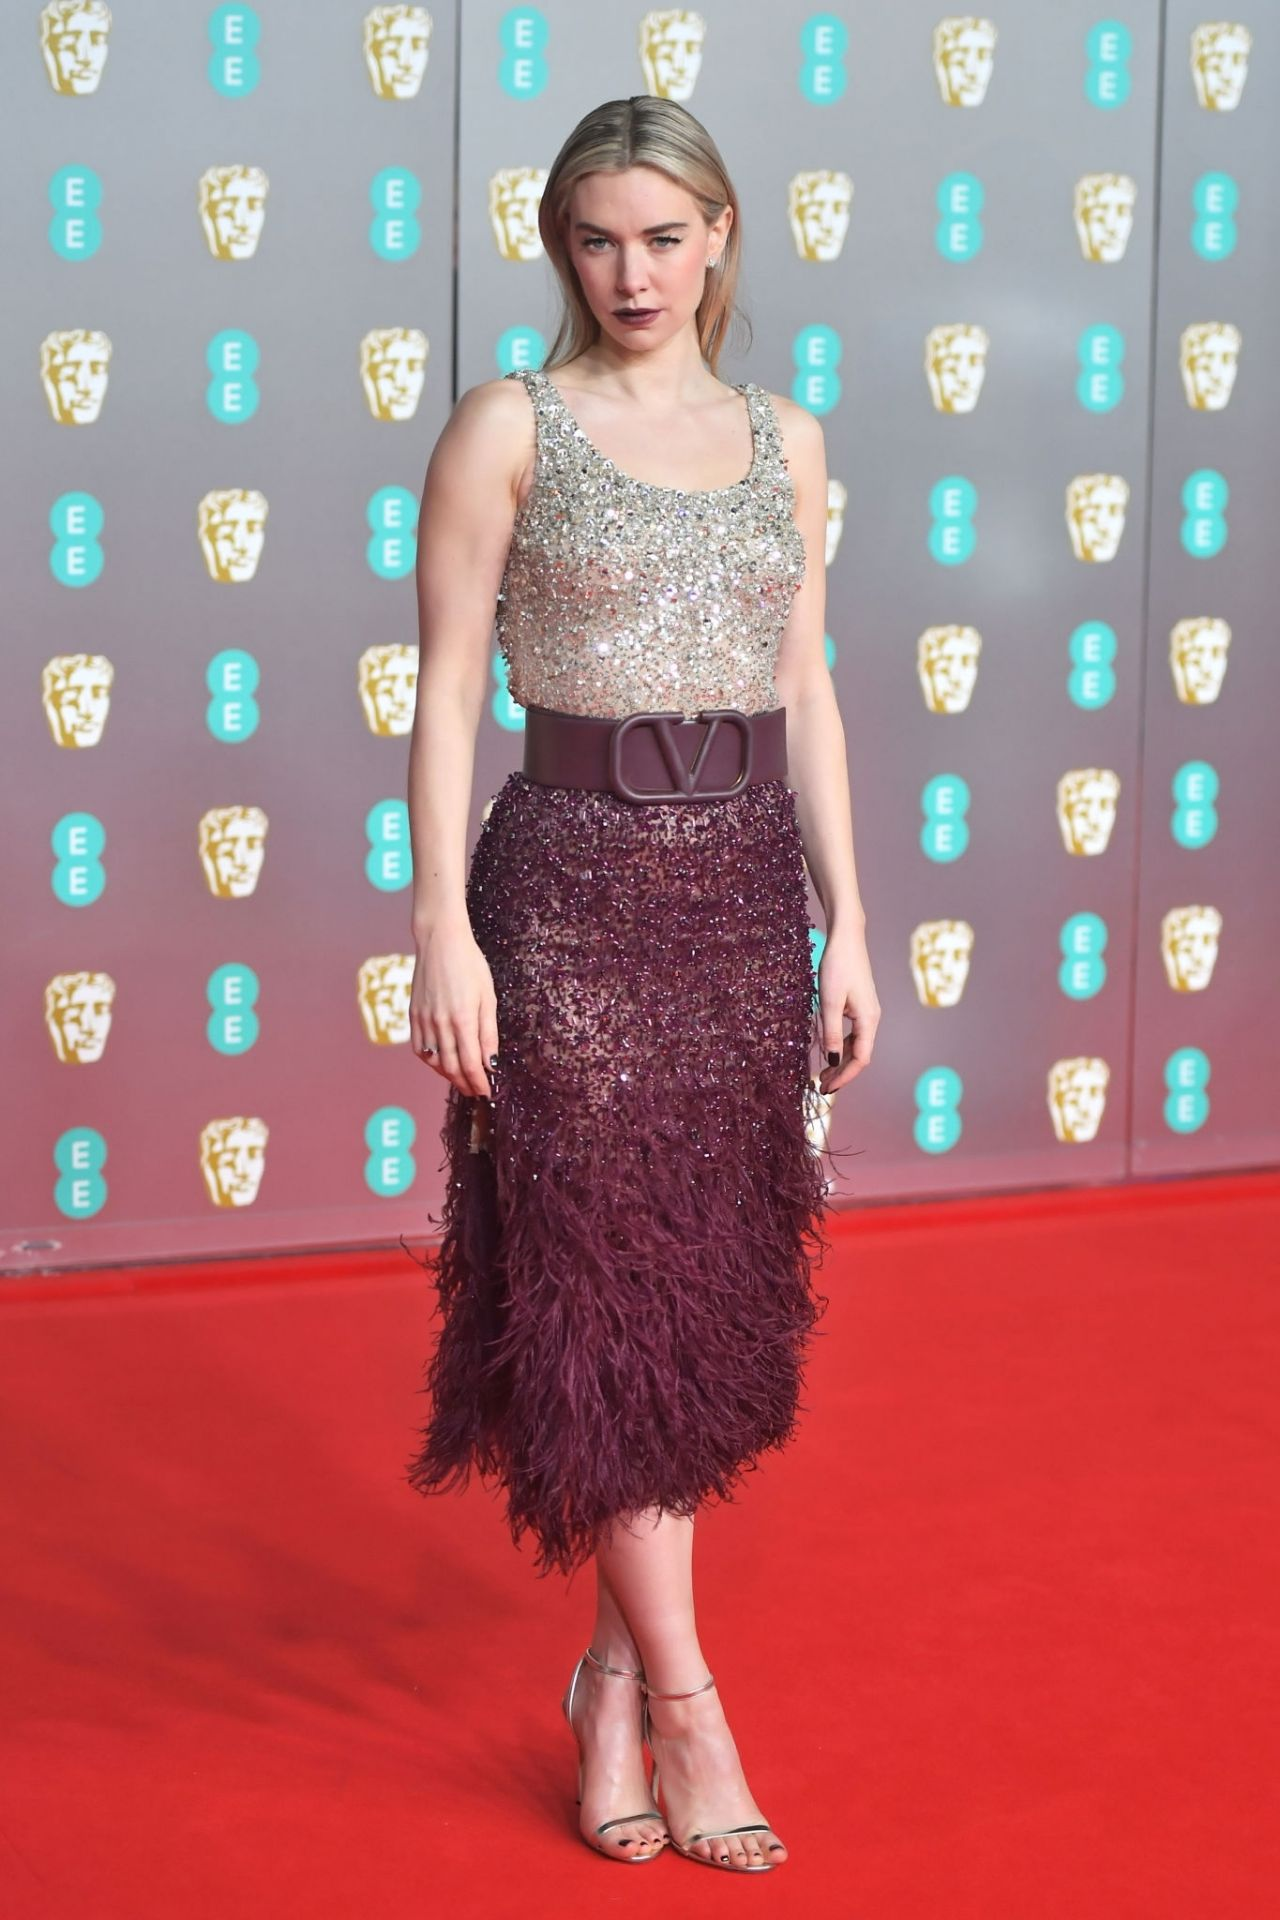 vanessa-kirby-in-valentino-2020-ee-british-academy-film-awards